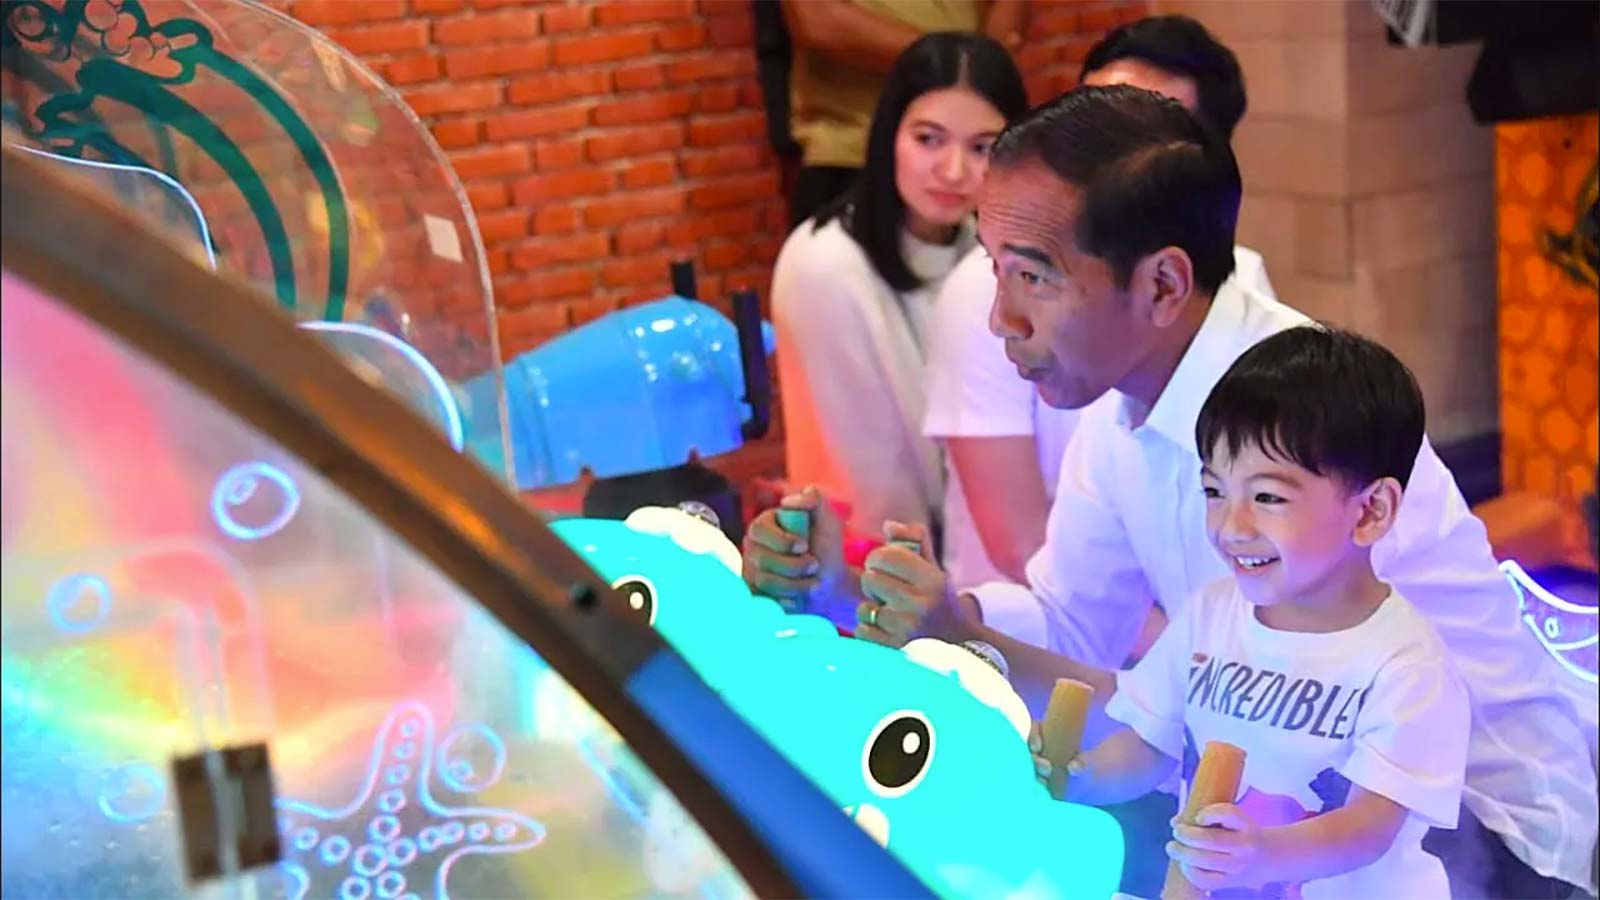 Joko Widodo and three-year-old grandson Jan Ethes at the shopping mall (Photo: Sekretariat Presiden/YouTube)